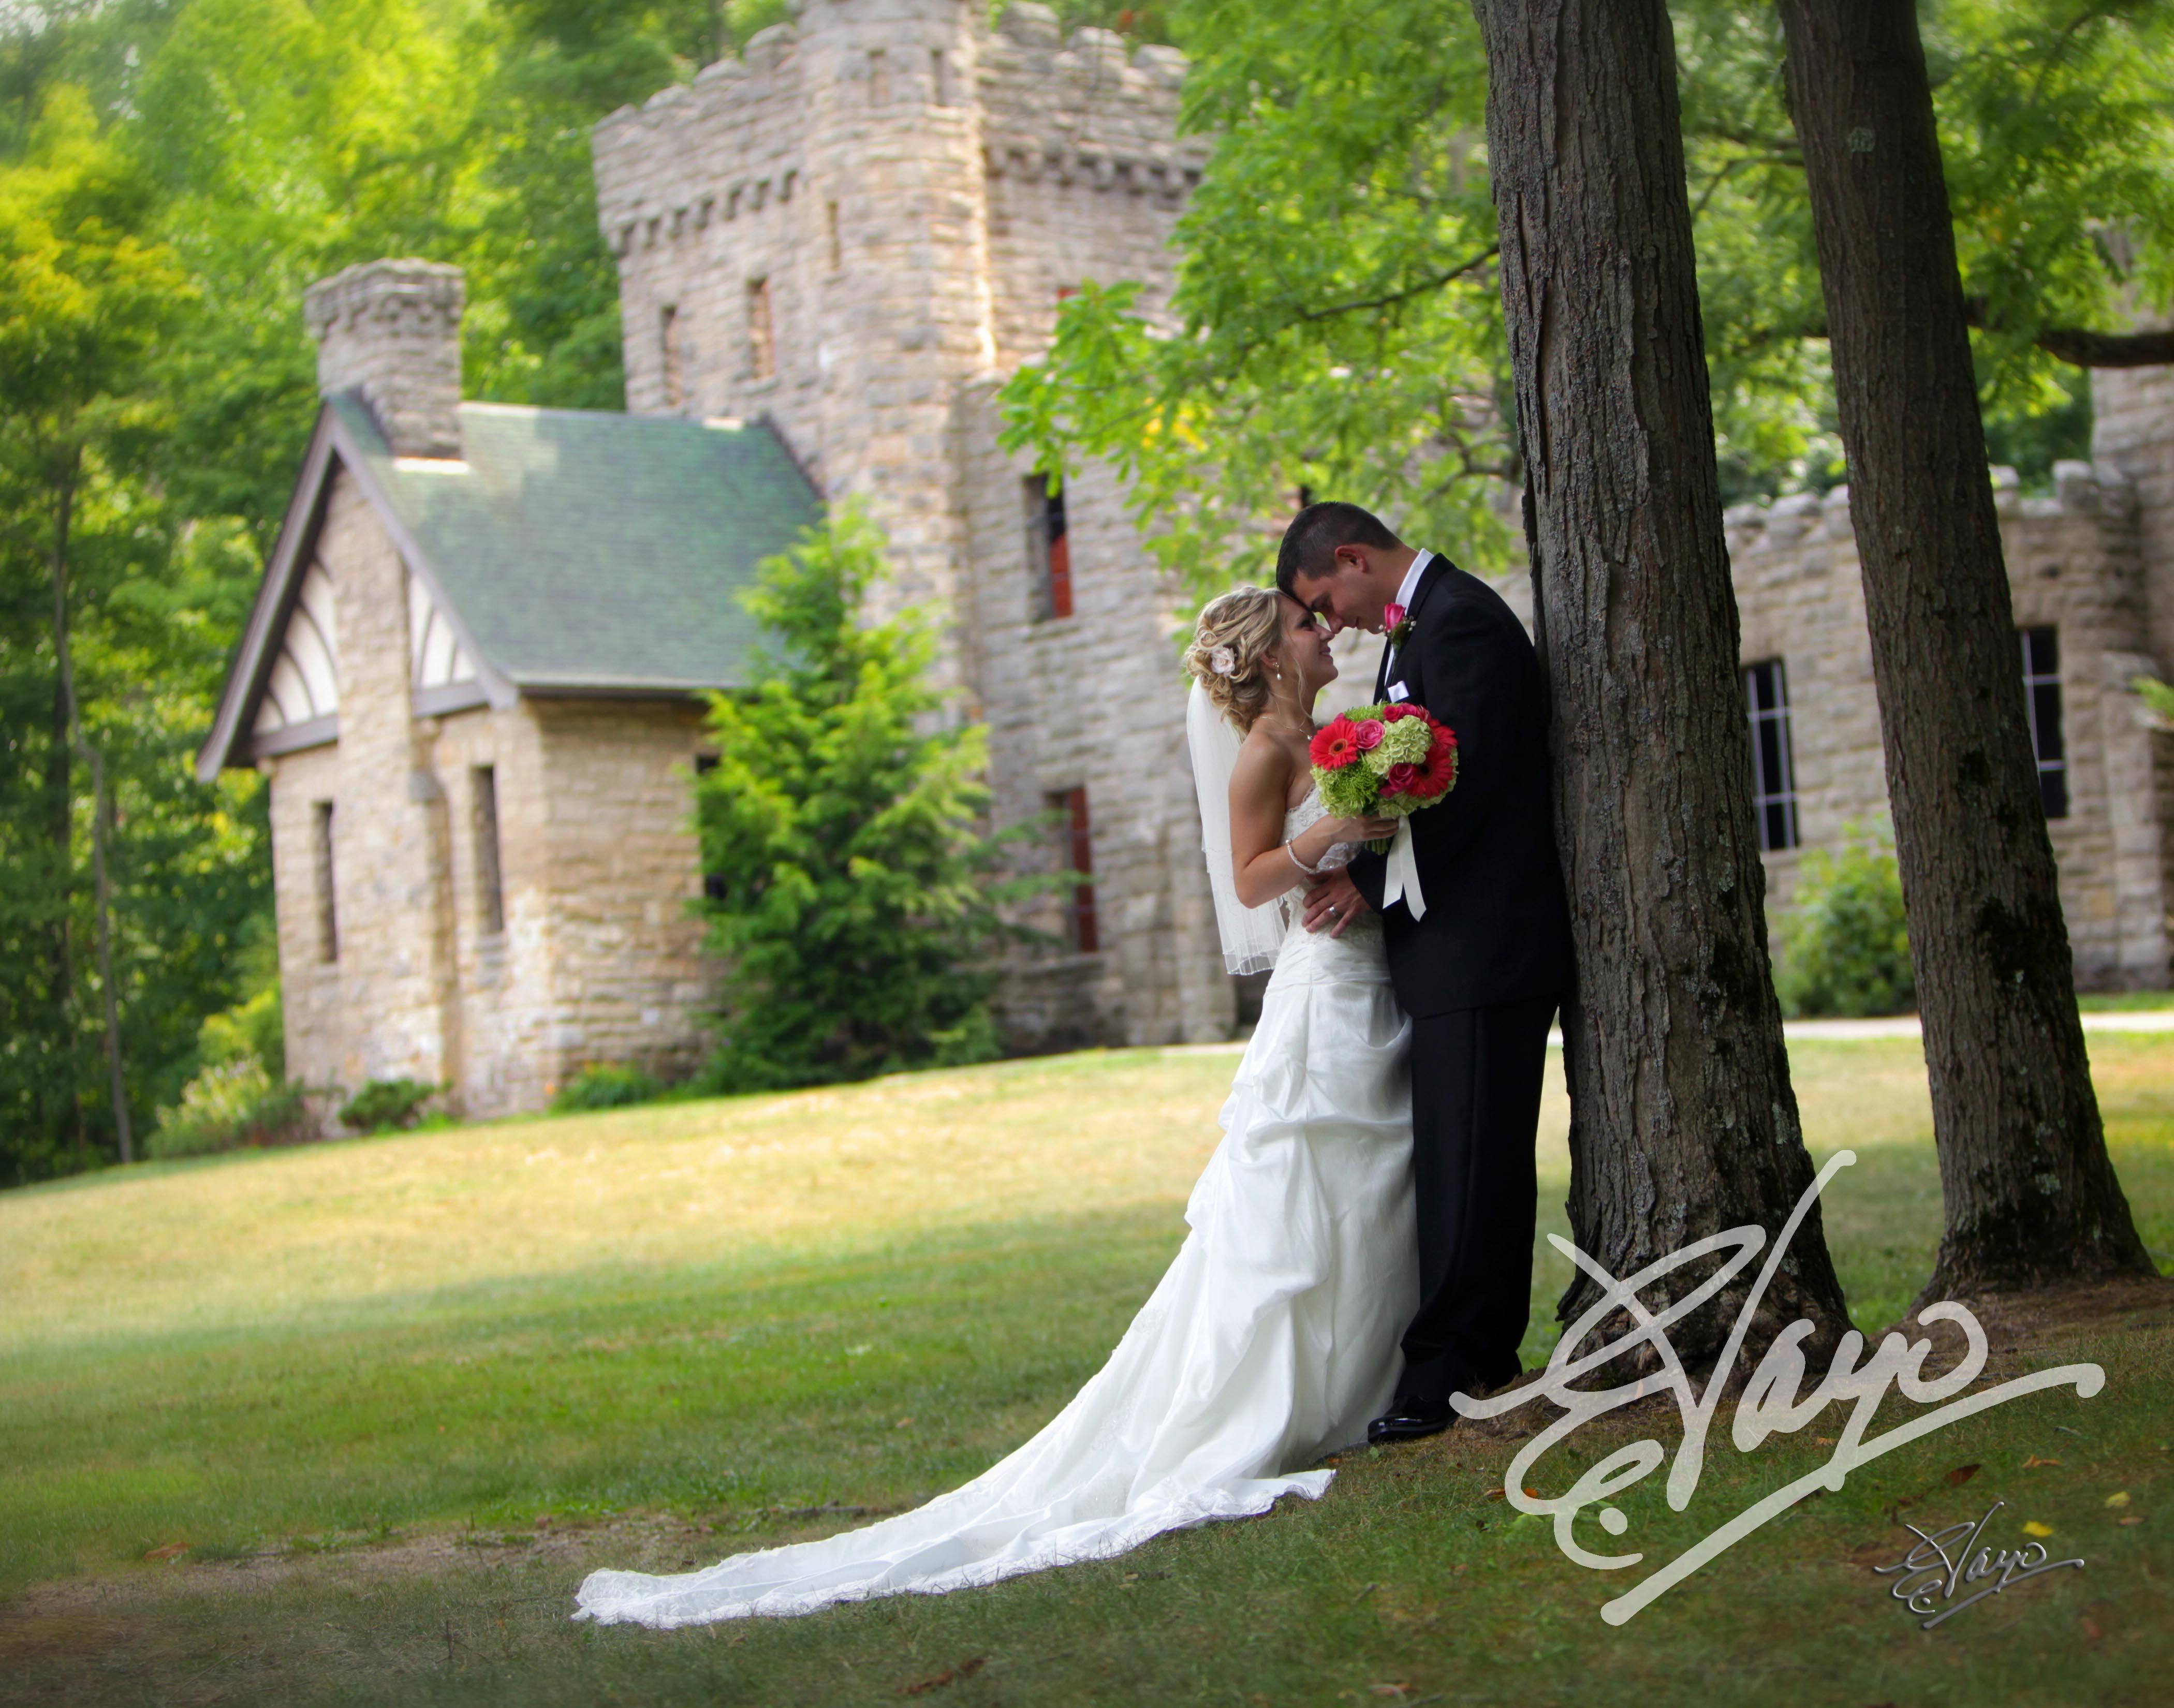 wedding at squires castle ellie vayo photography my wedding